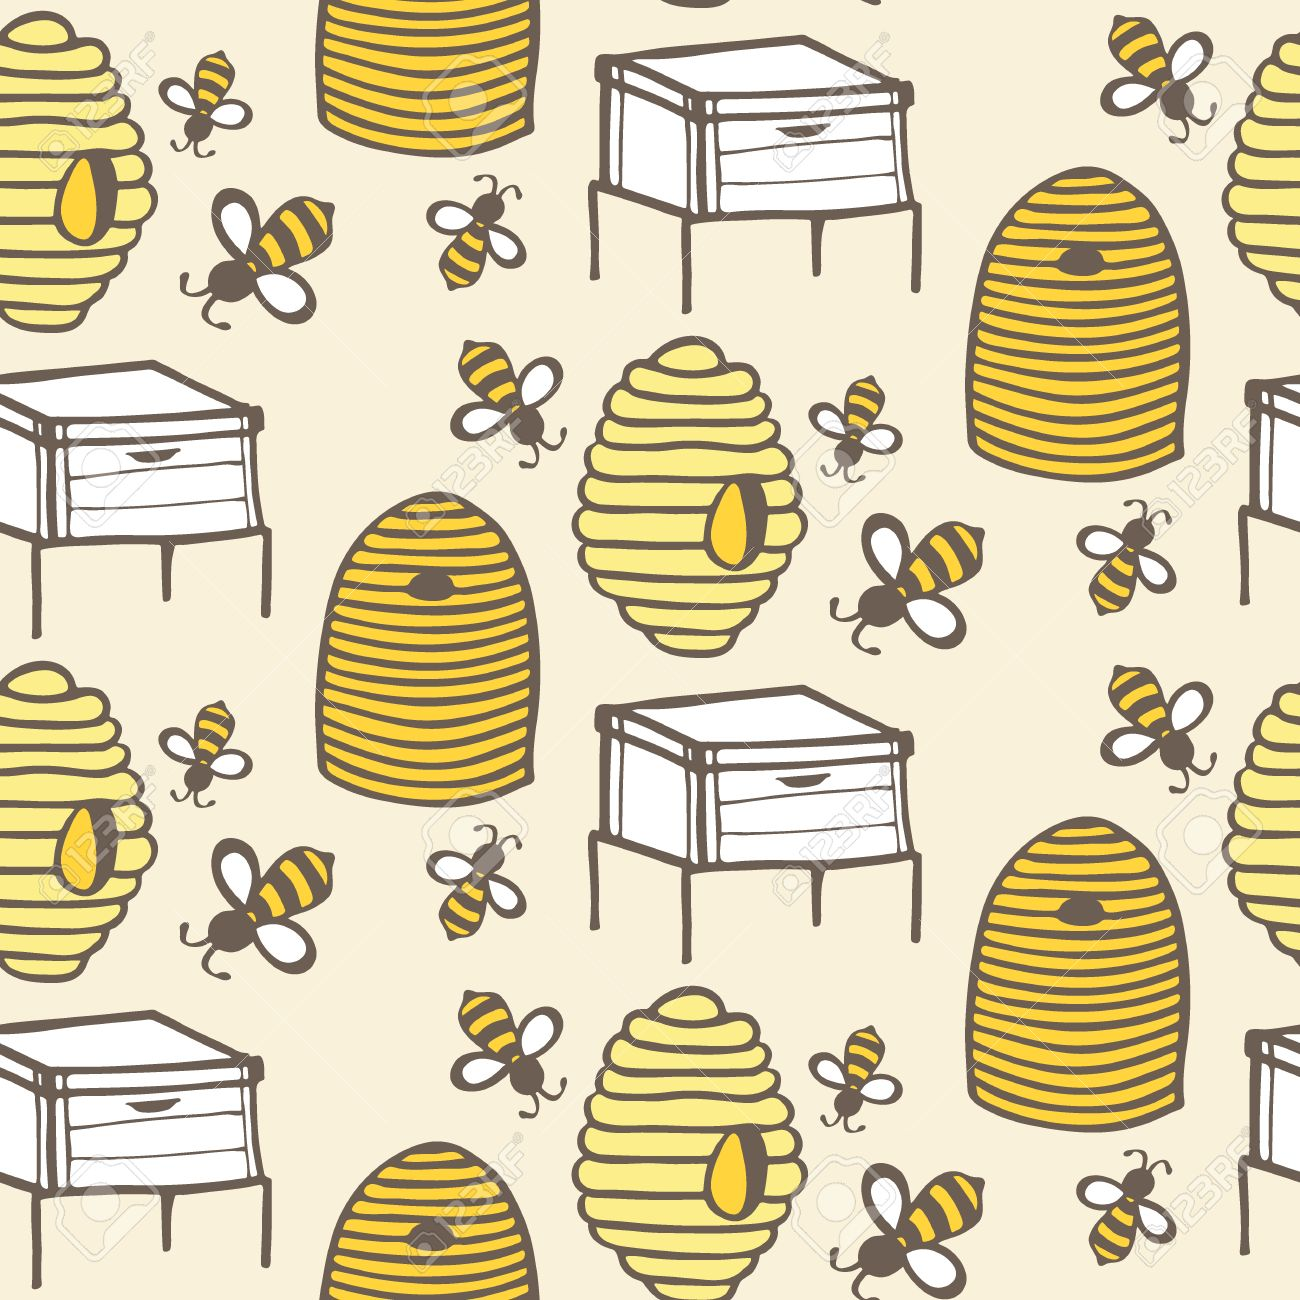 1300x1300 Beehive And Bee. Hand Drawn Seamless Cartoon Pattern With Honey